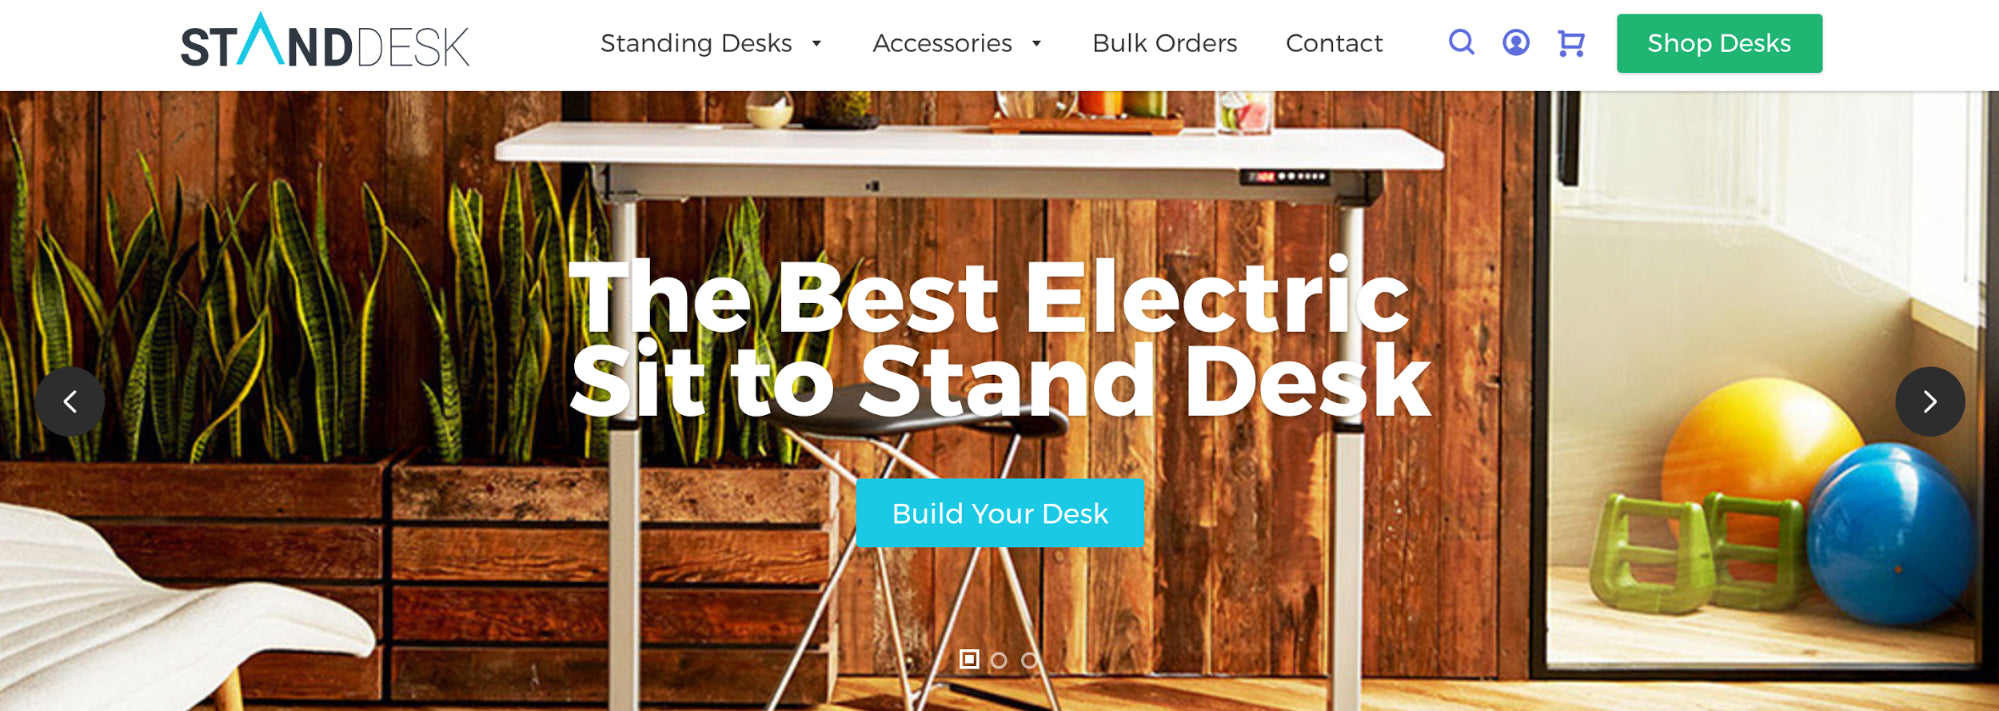 StandDesk homepage